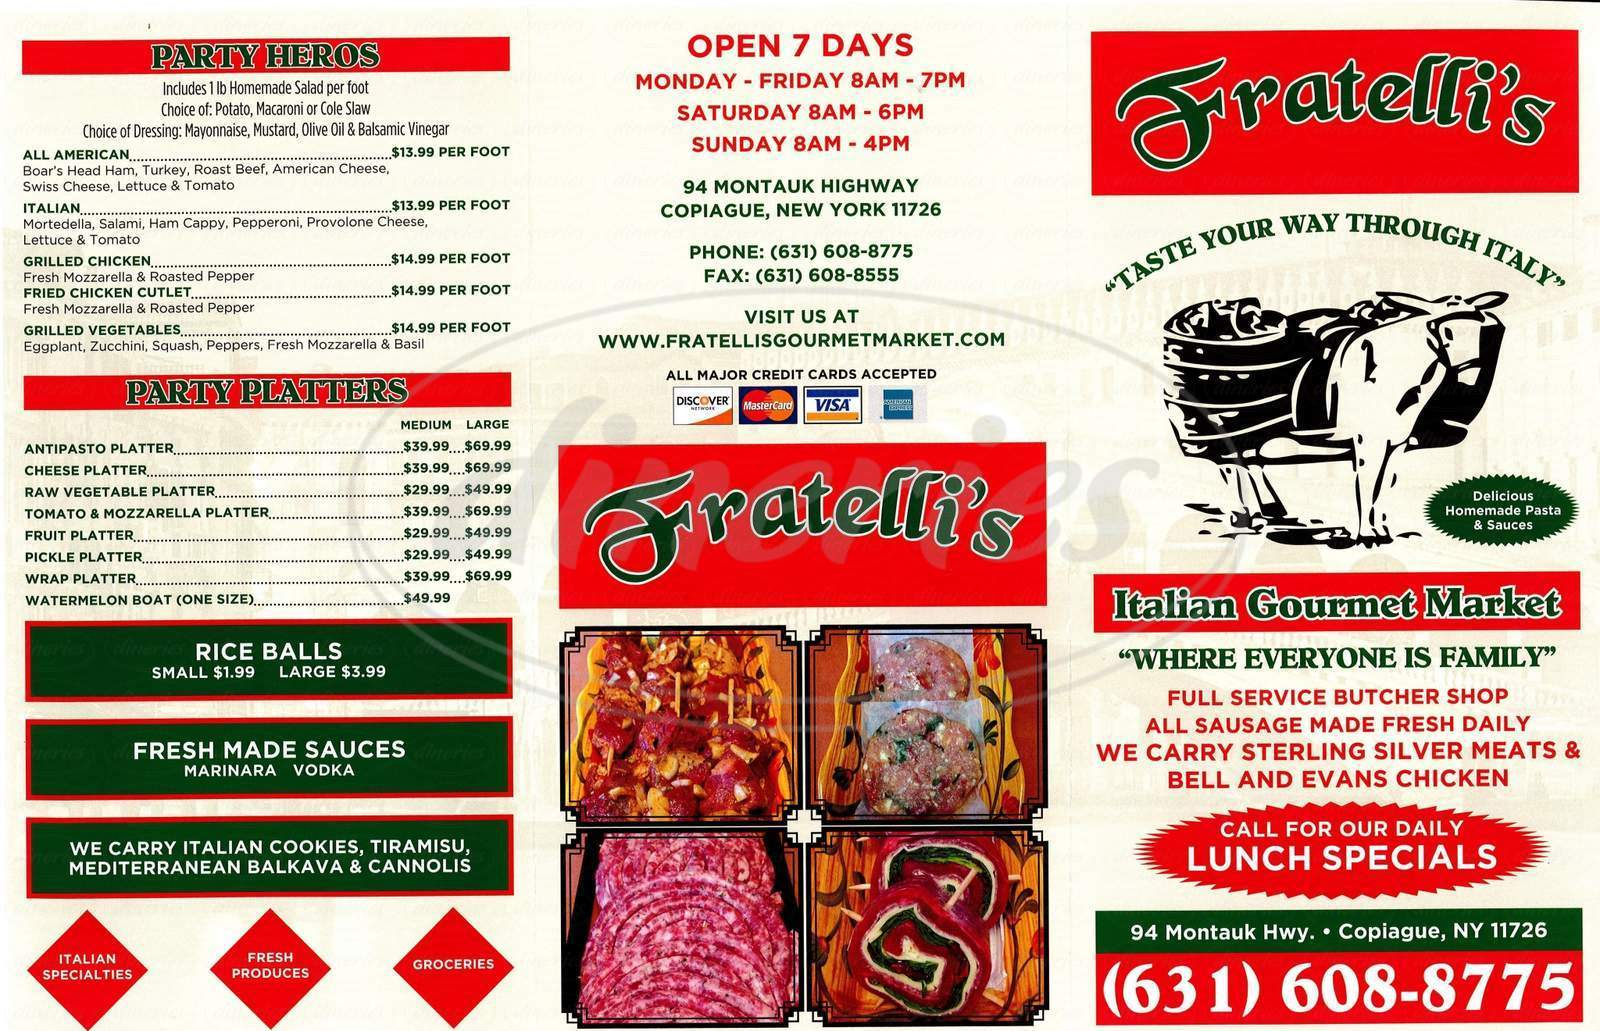 menu for Fratelli's Italian Gourmet Market